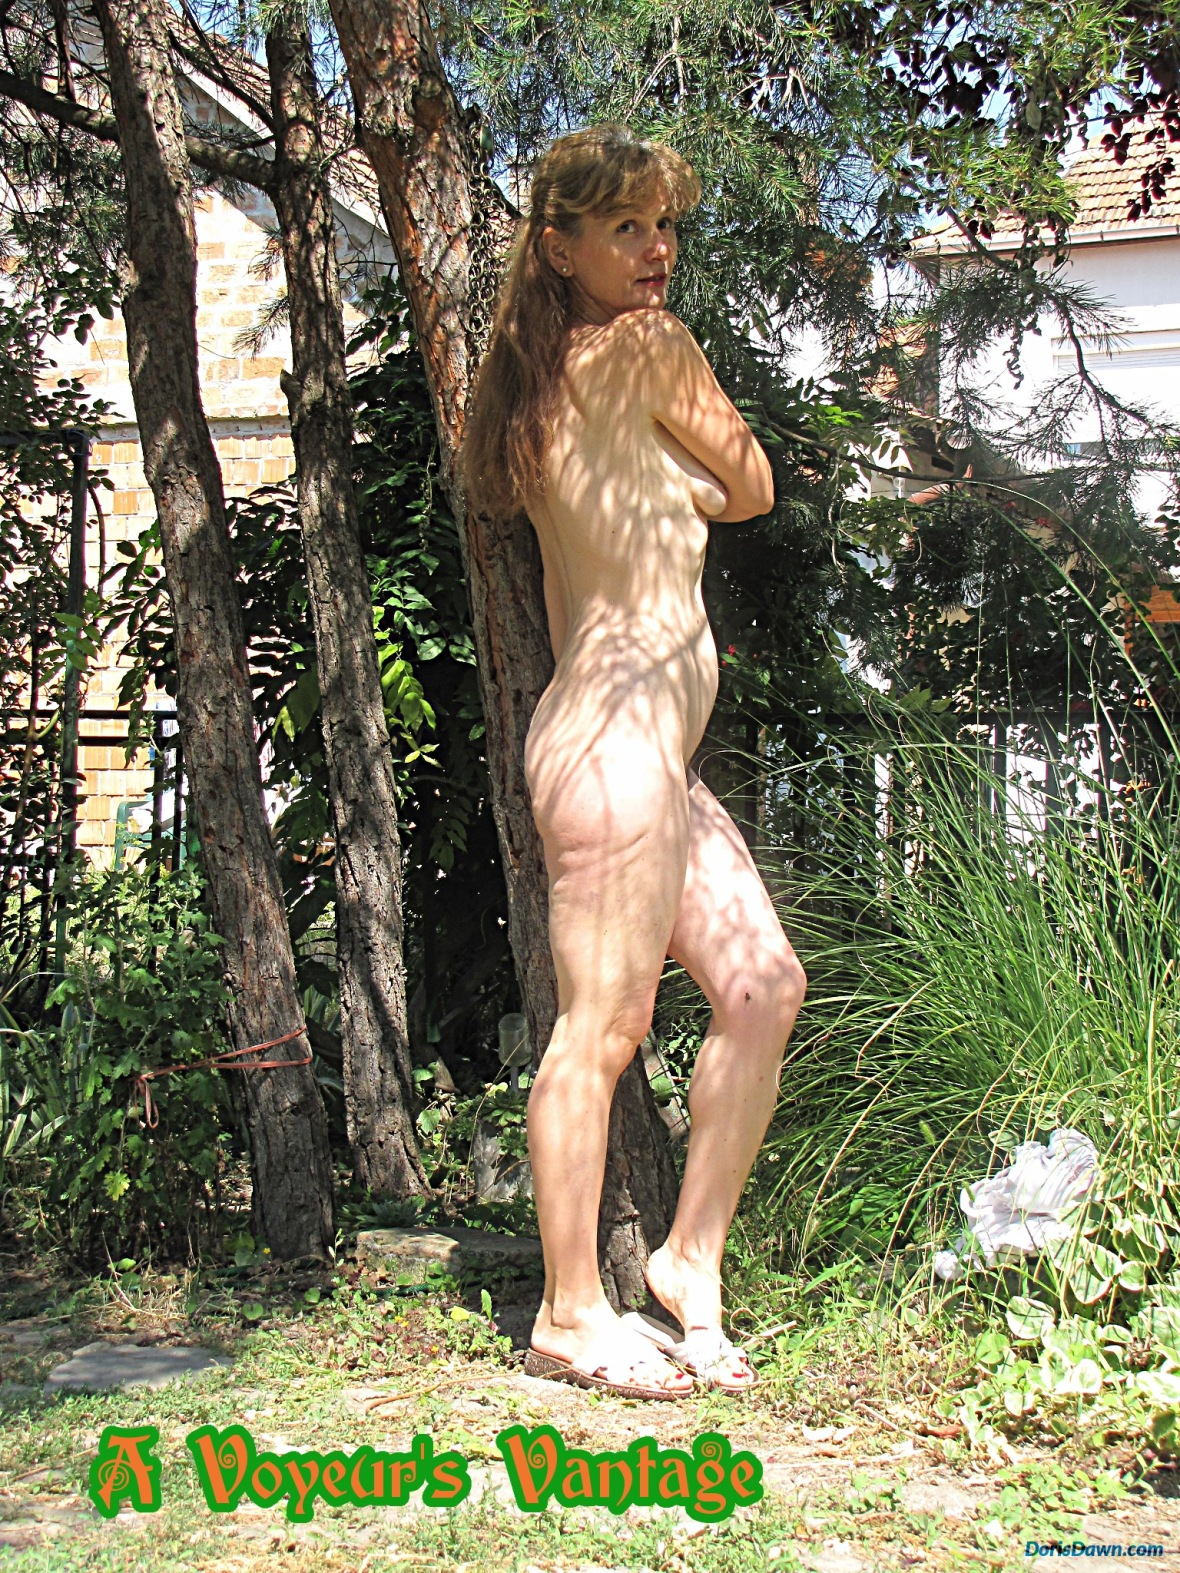 Doris nude in her garden, hiding under the shadow of a cute pine.